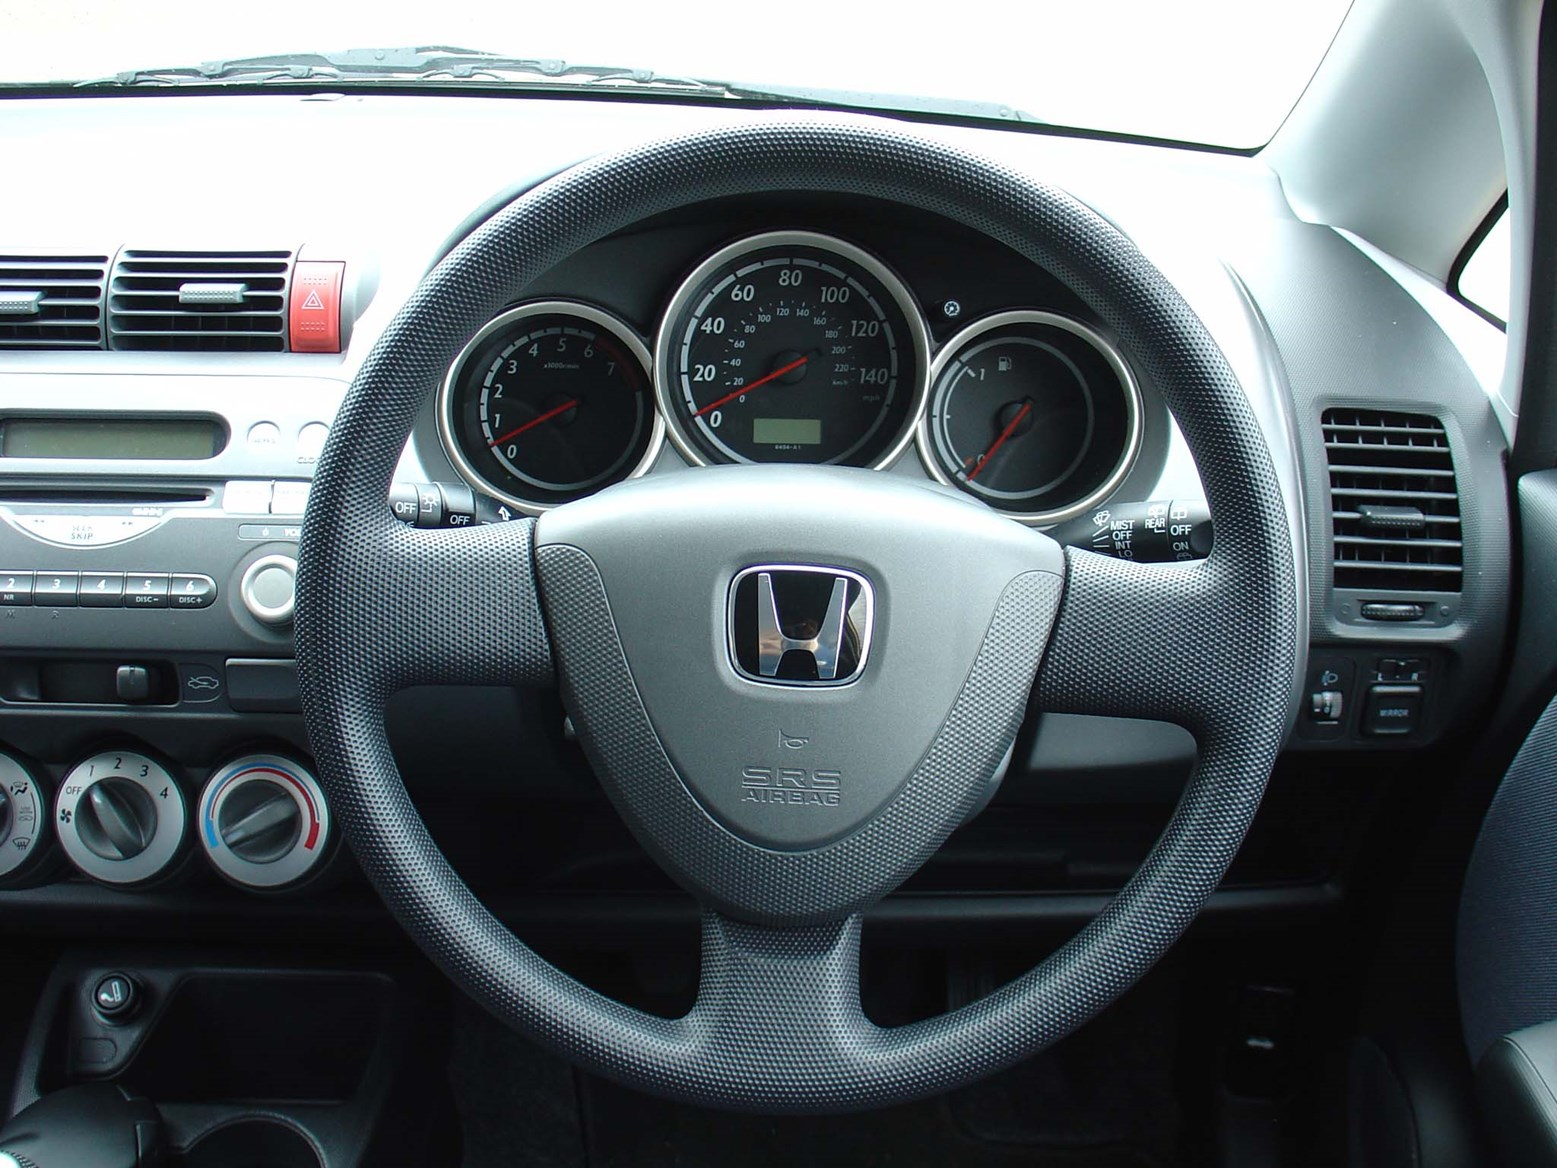 Honda Jazz Hatchback (2002 - 2008) Features, Equipment and ...